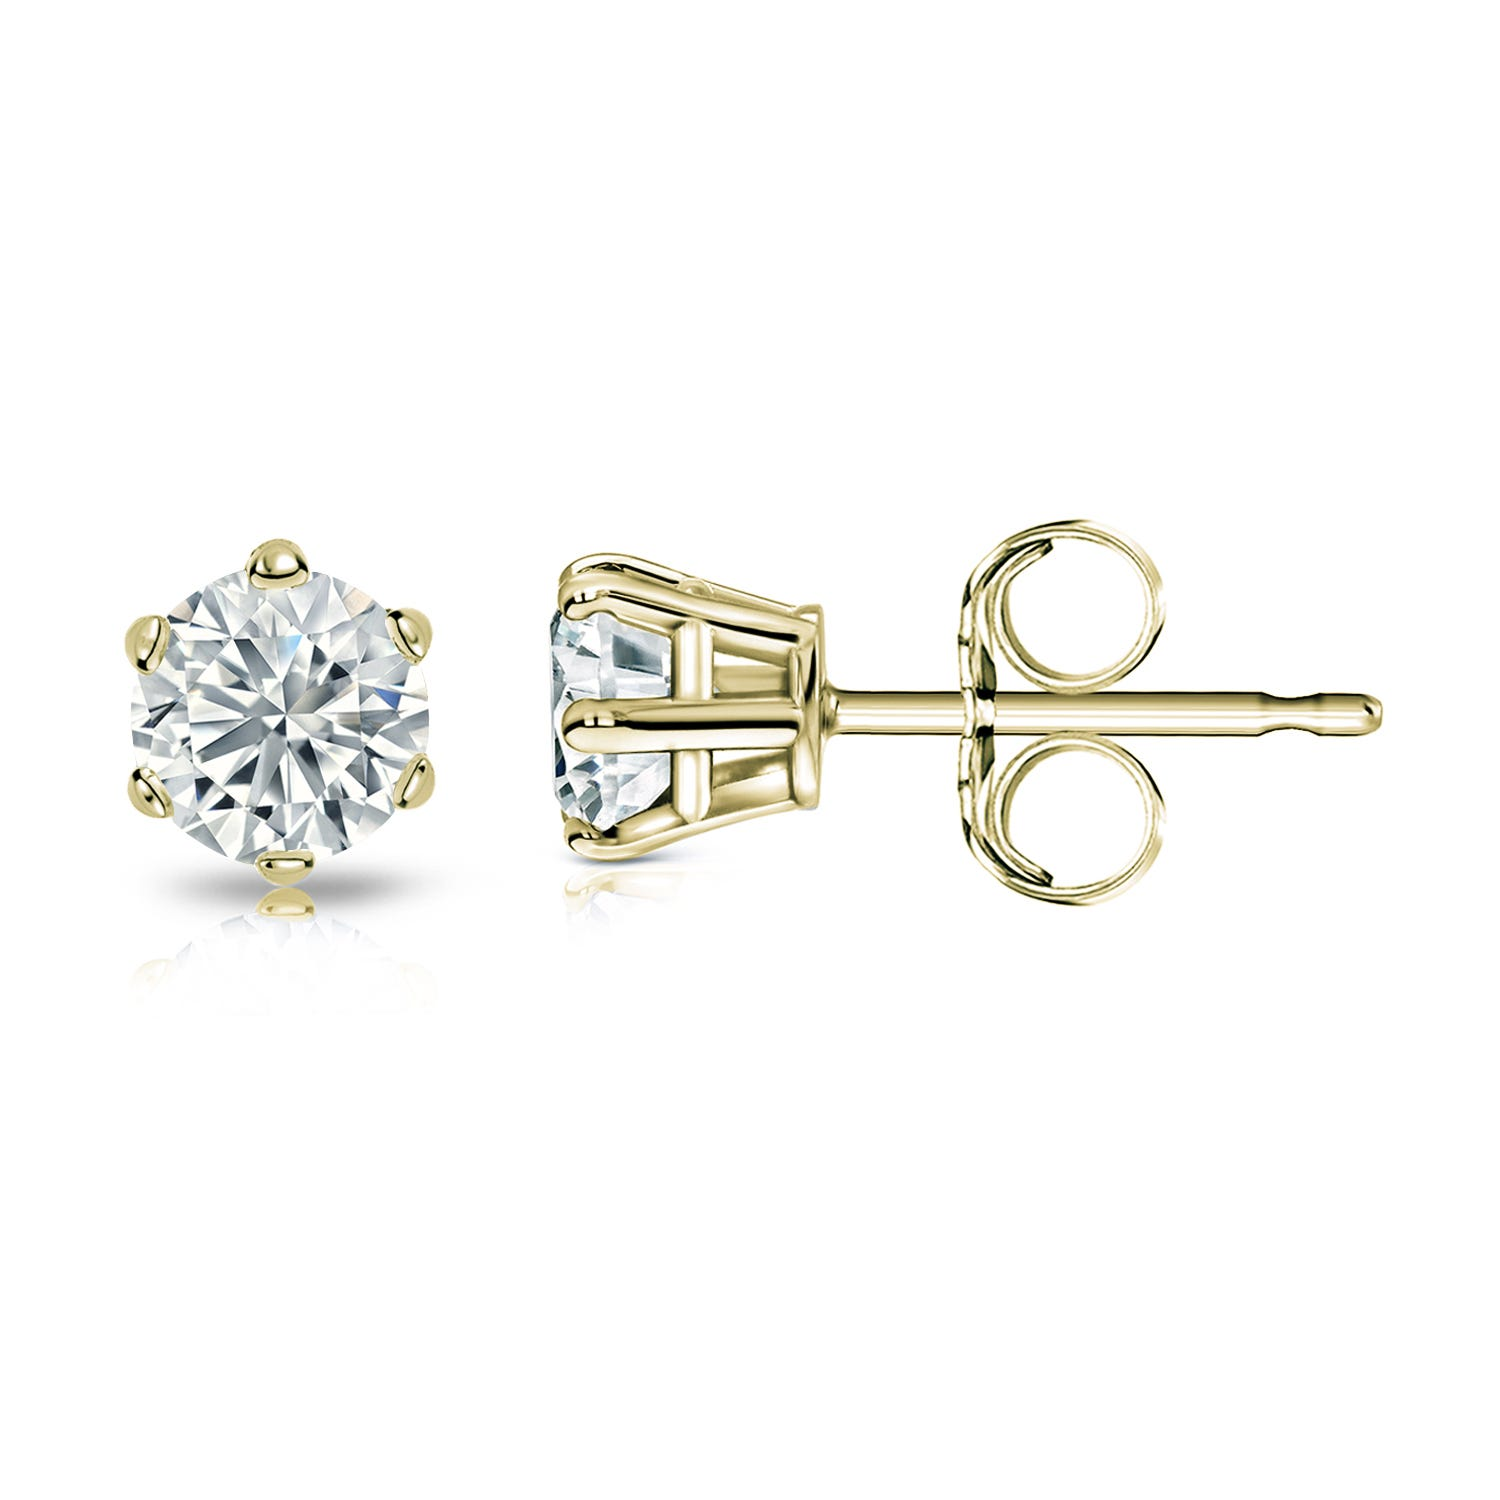 Round Diamond 1/2ctw. (IJ-I1) Solitaire Stud 6-Prong Earrings in 14K Yellow Gold